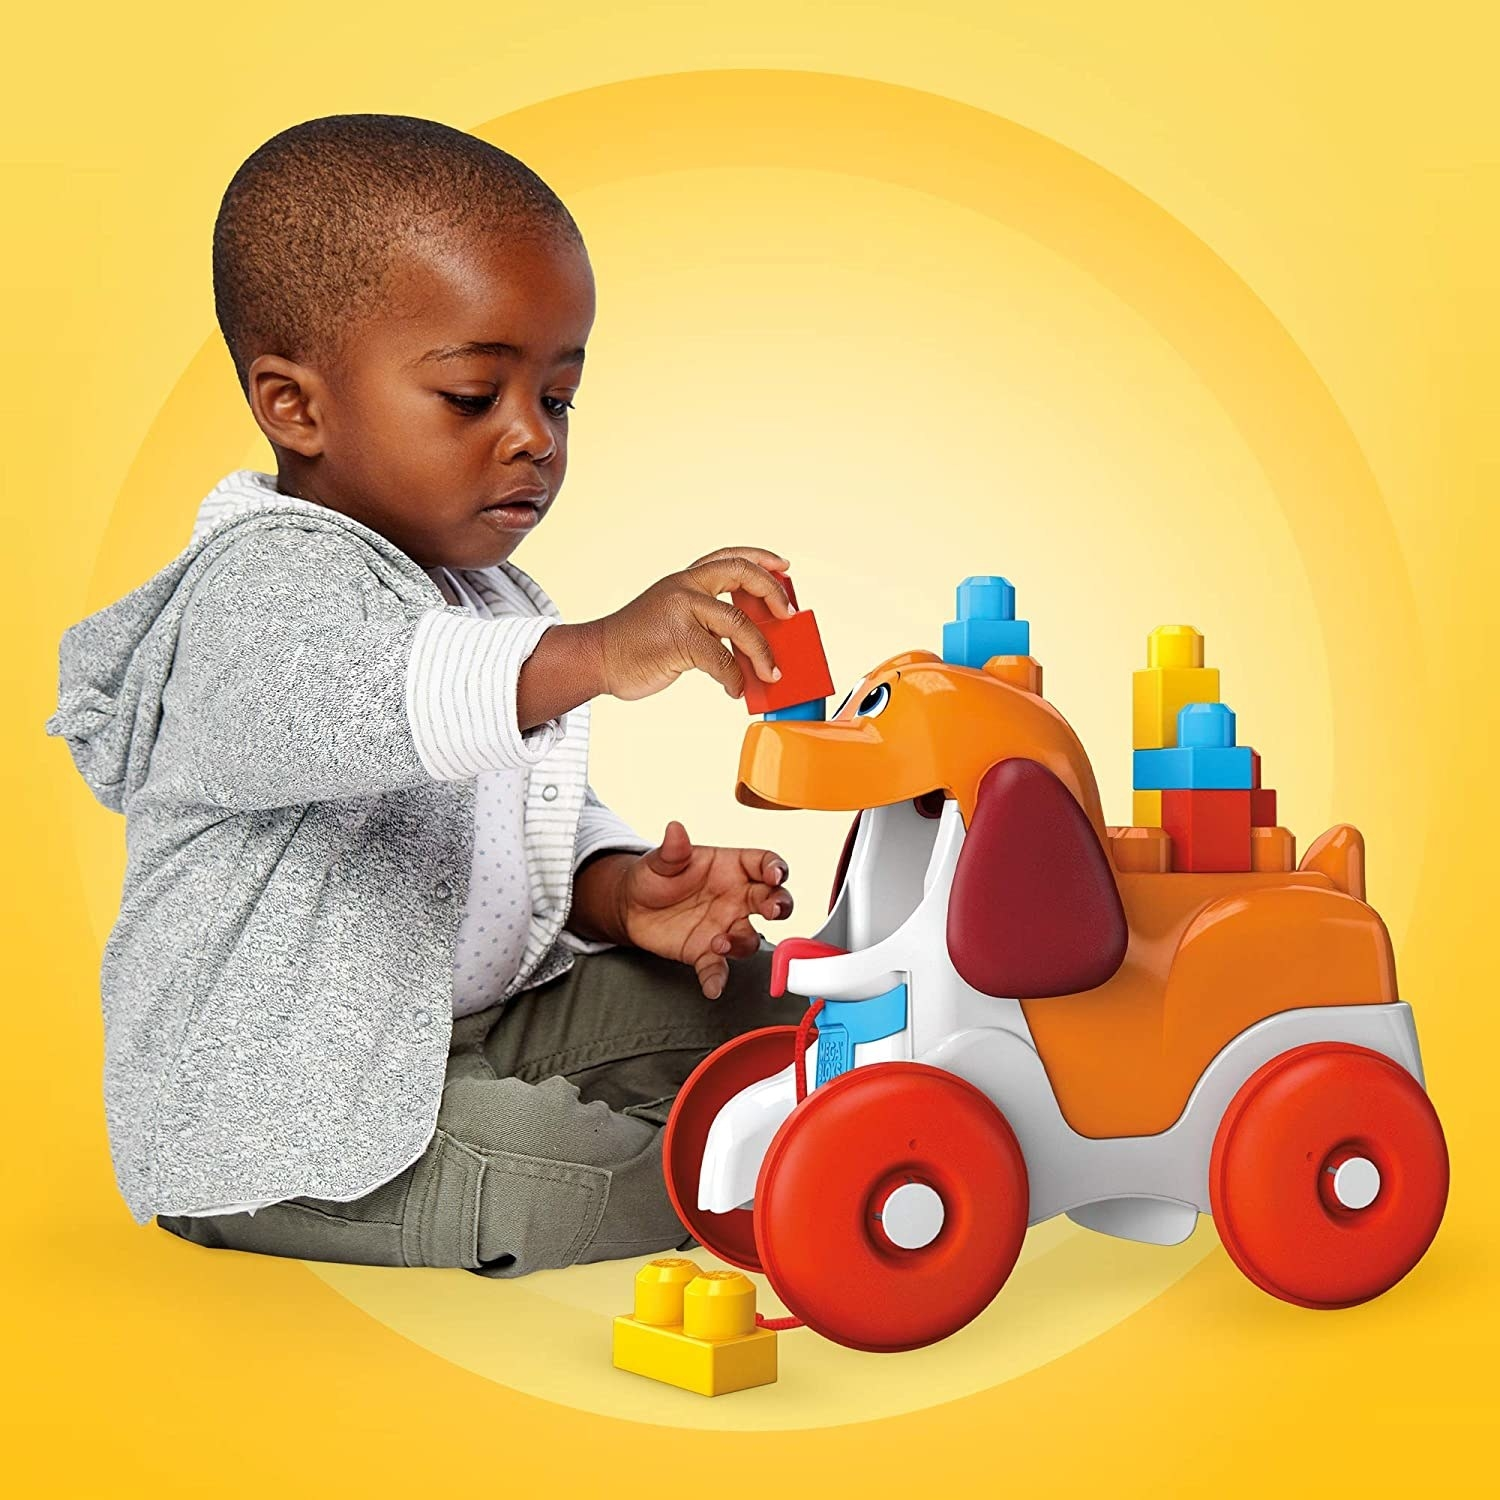 Child model playing with bright plastic dog toy with red wheels